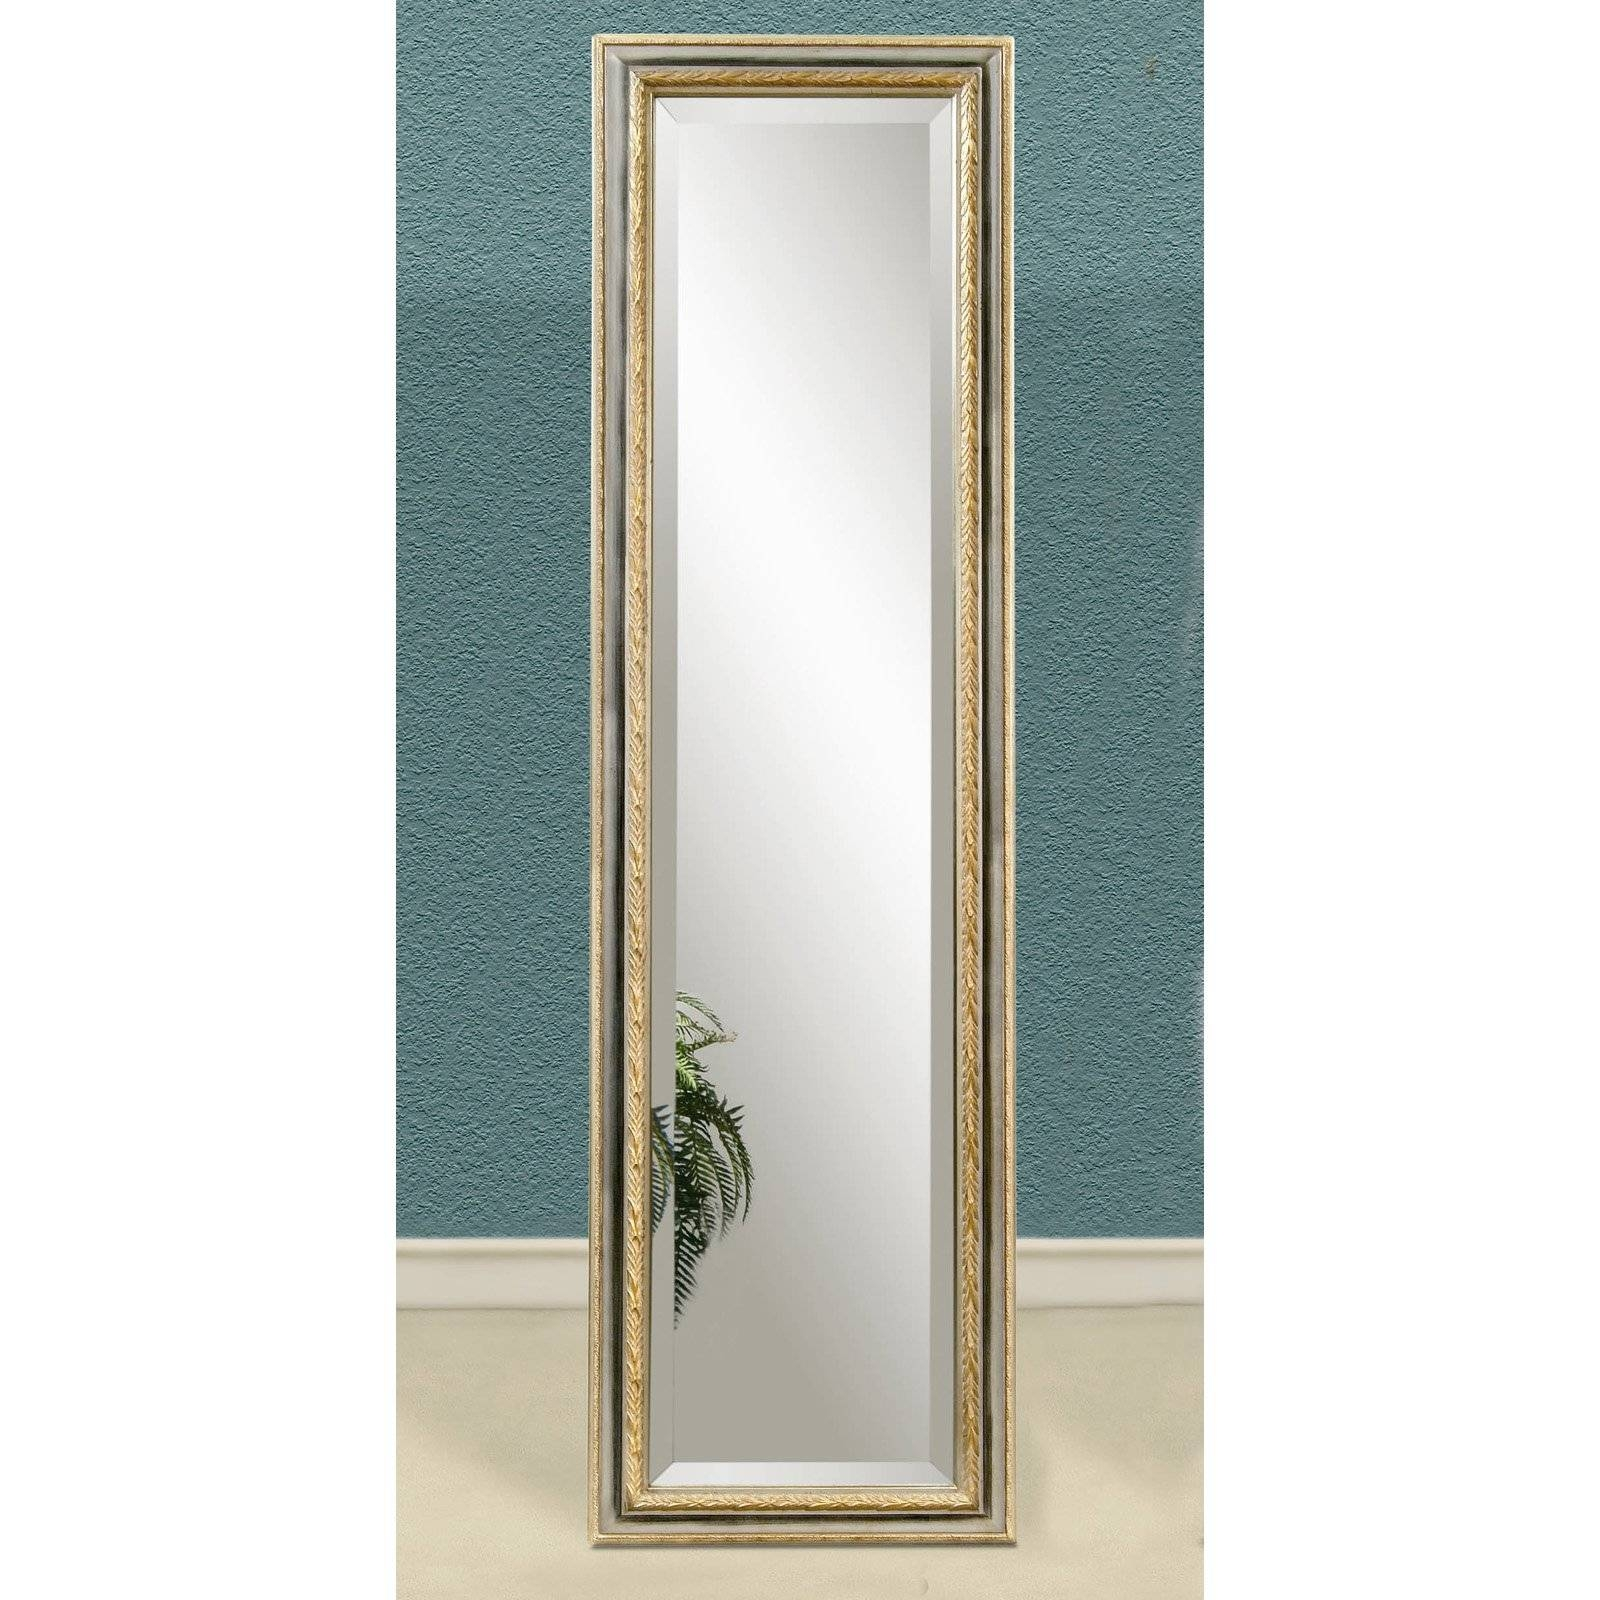 Decorating: Jewelry Cheval Mirror With Wooden Floor And Curtains throughout Decorative Full Length Mirrors (Image 3 of 25)